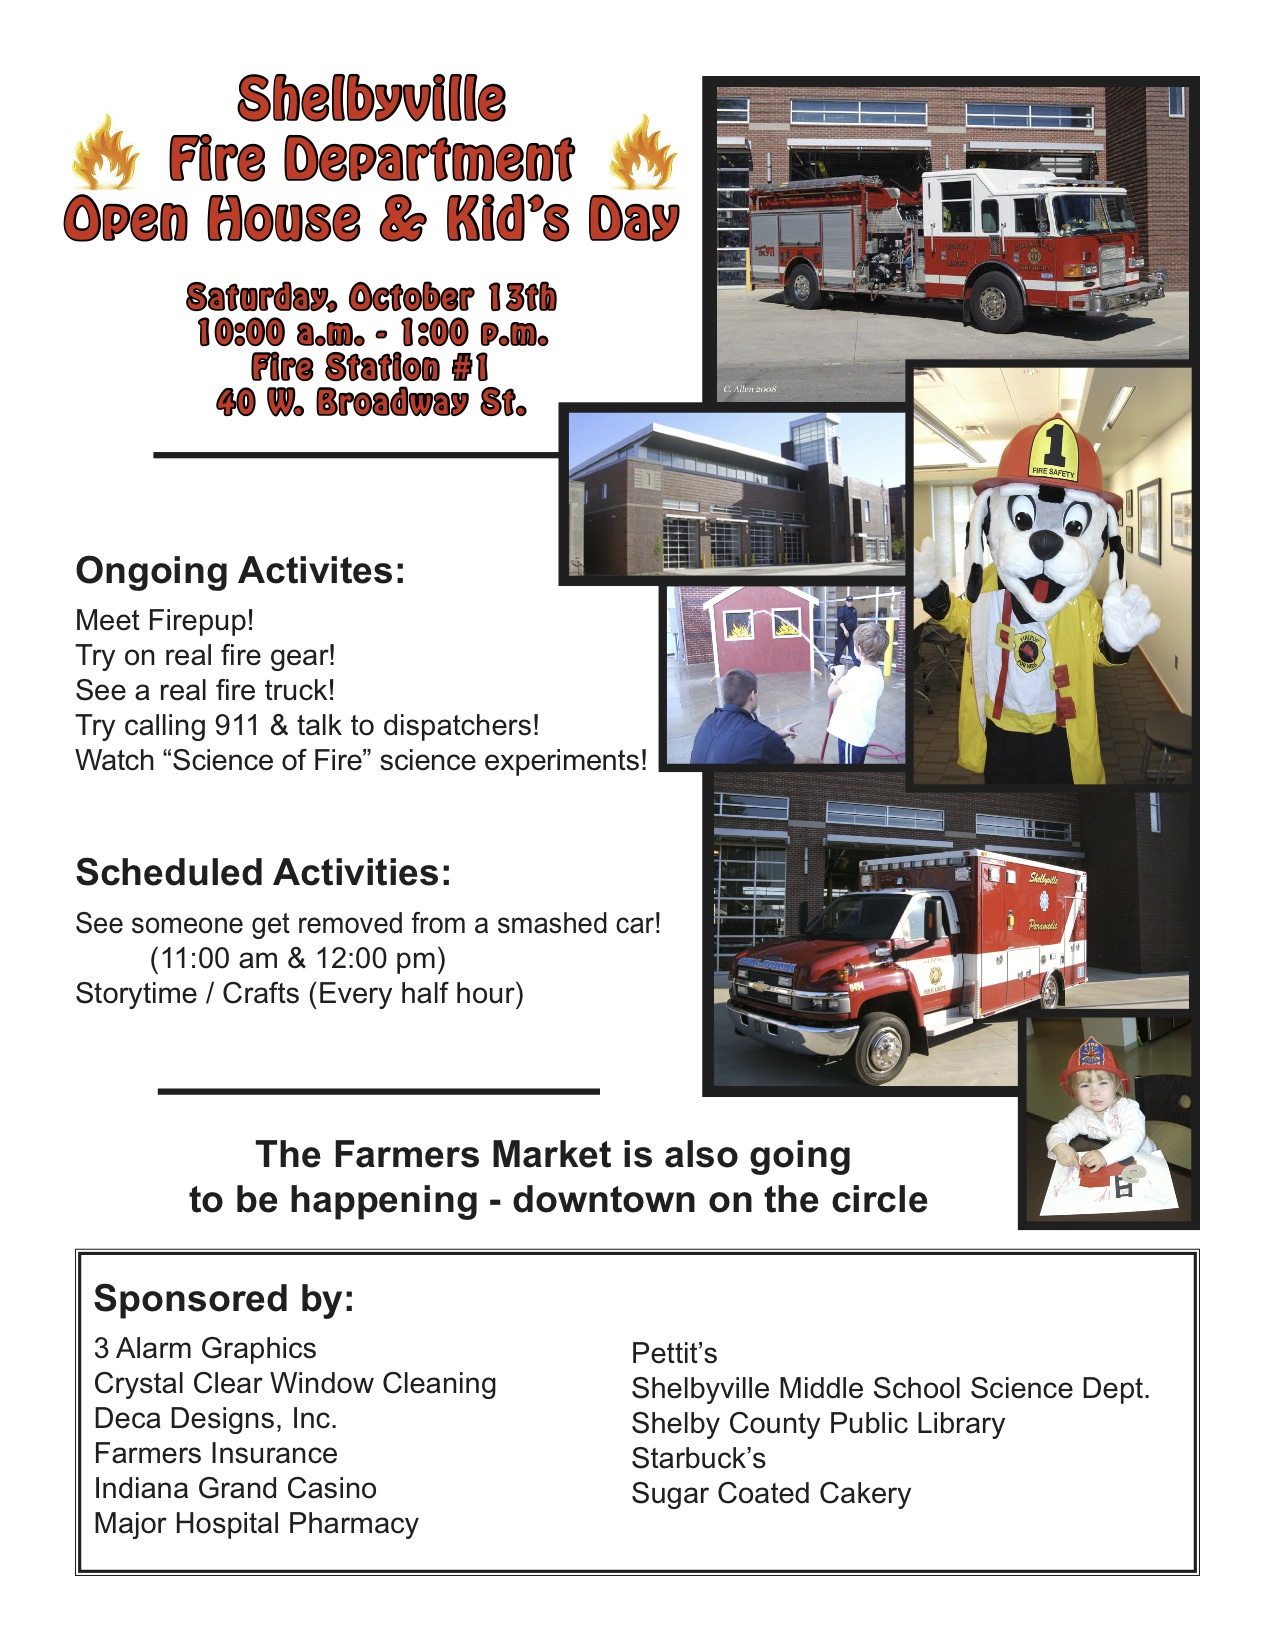 Fire Department Open House flyer 2012